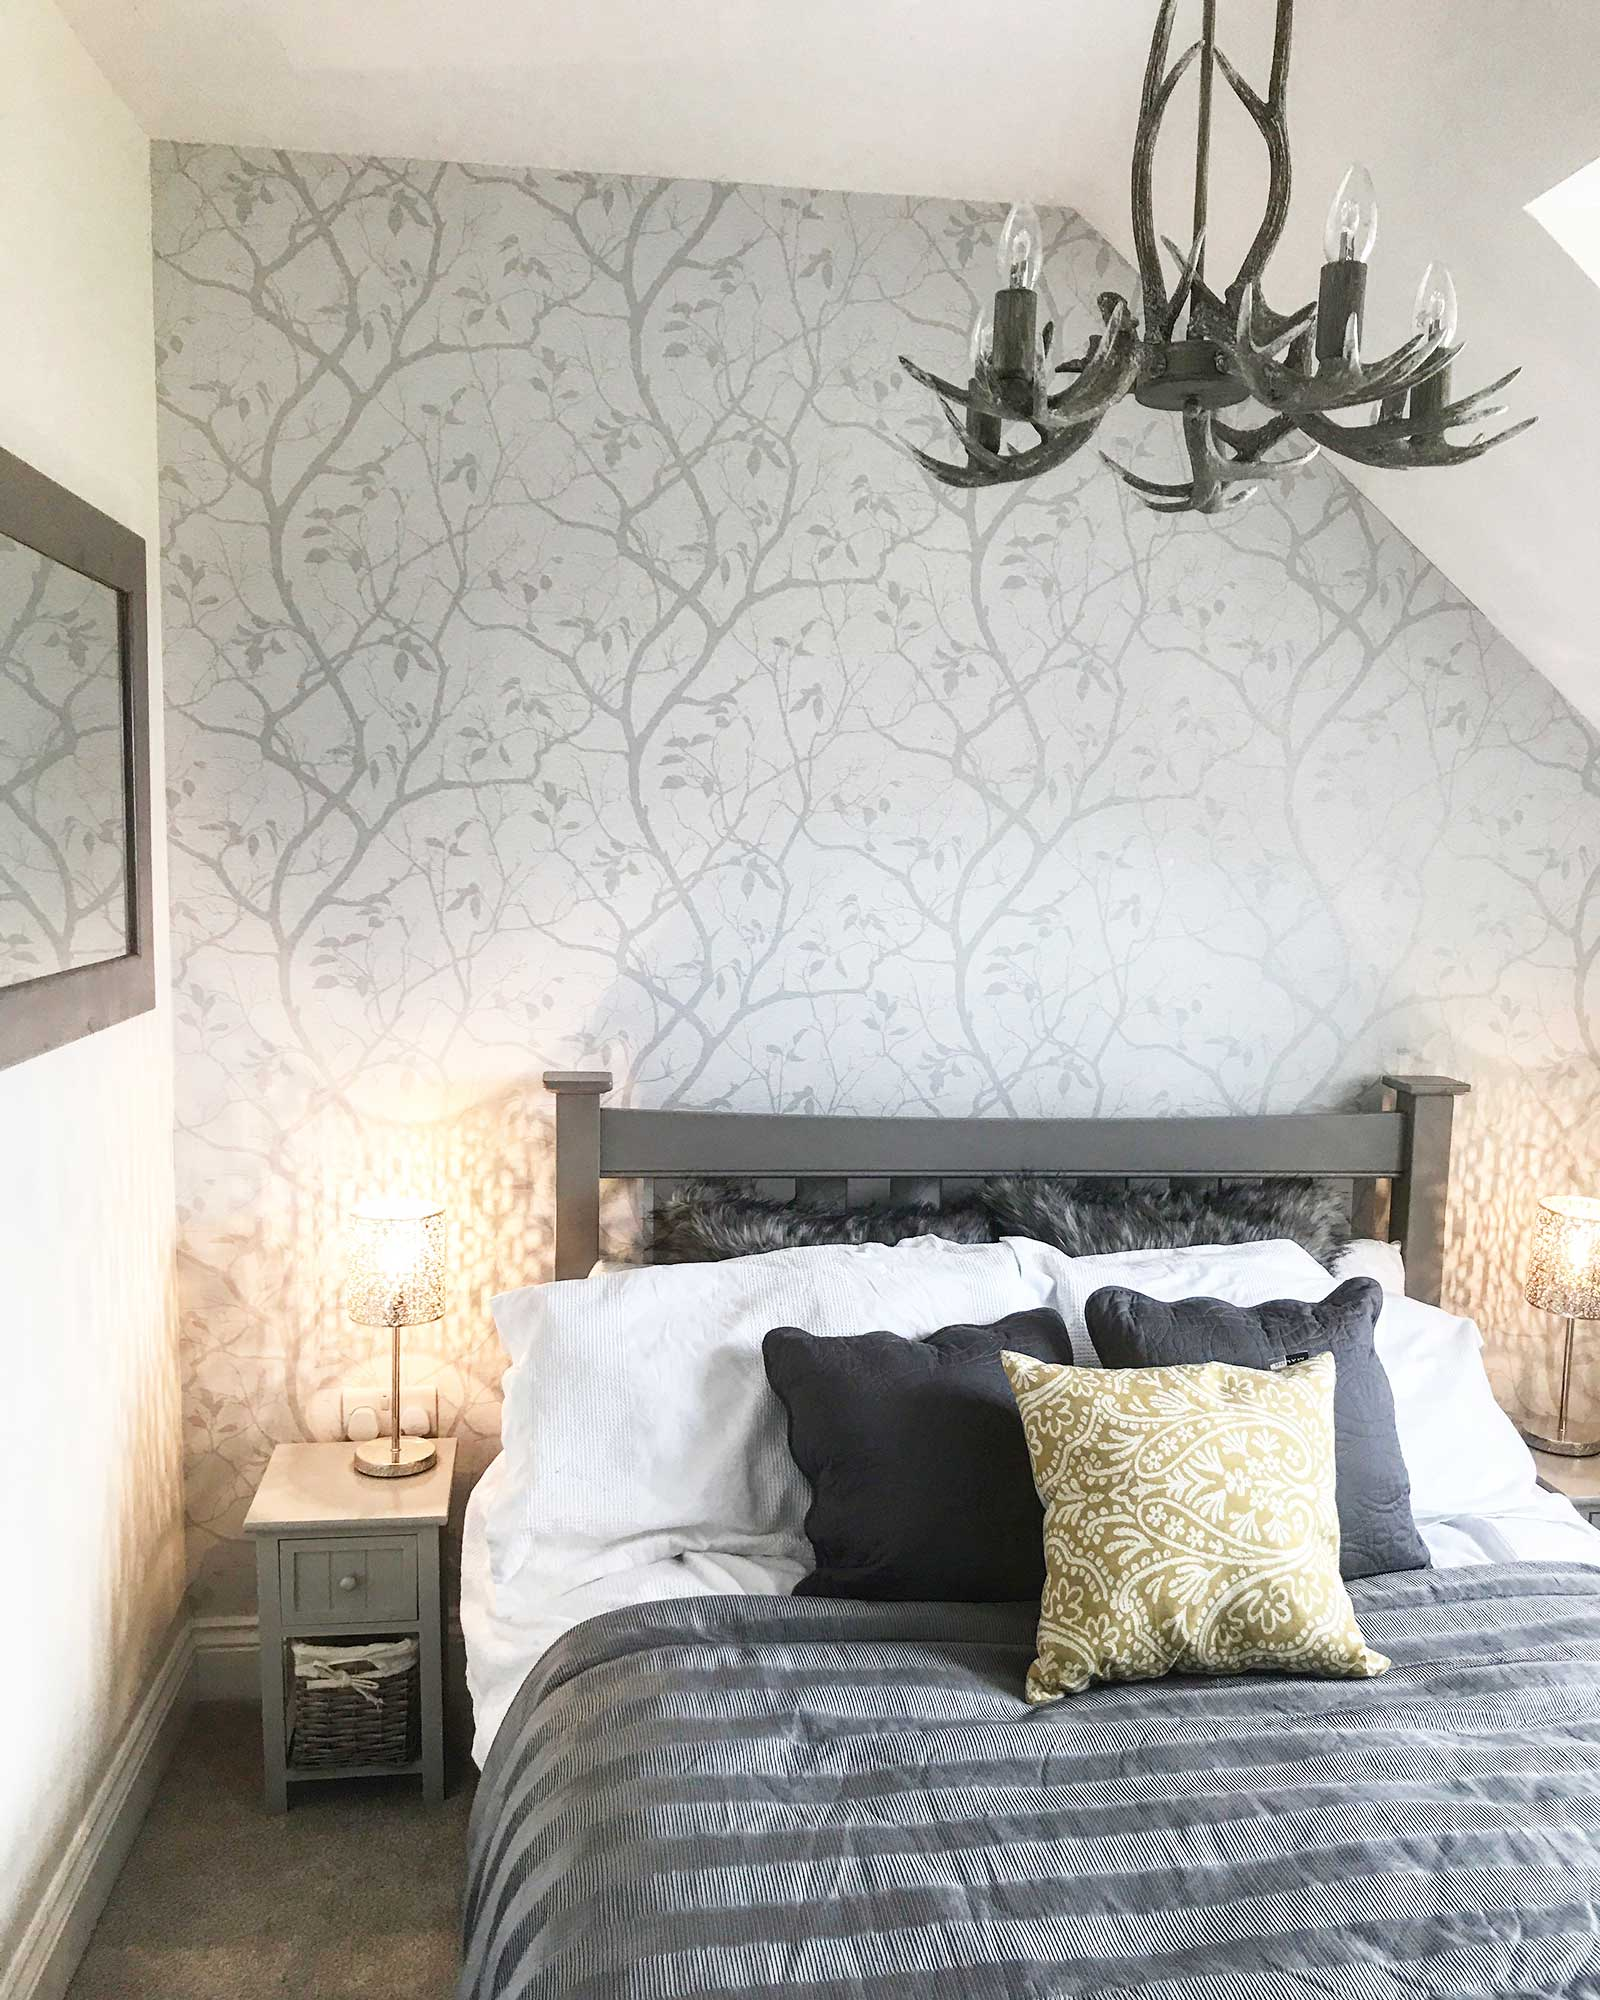 Guest bedroom: check out this new build home in the UK - it's eclectic, glamorous and welcoming @my_home_impression